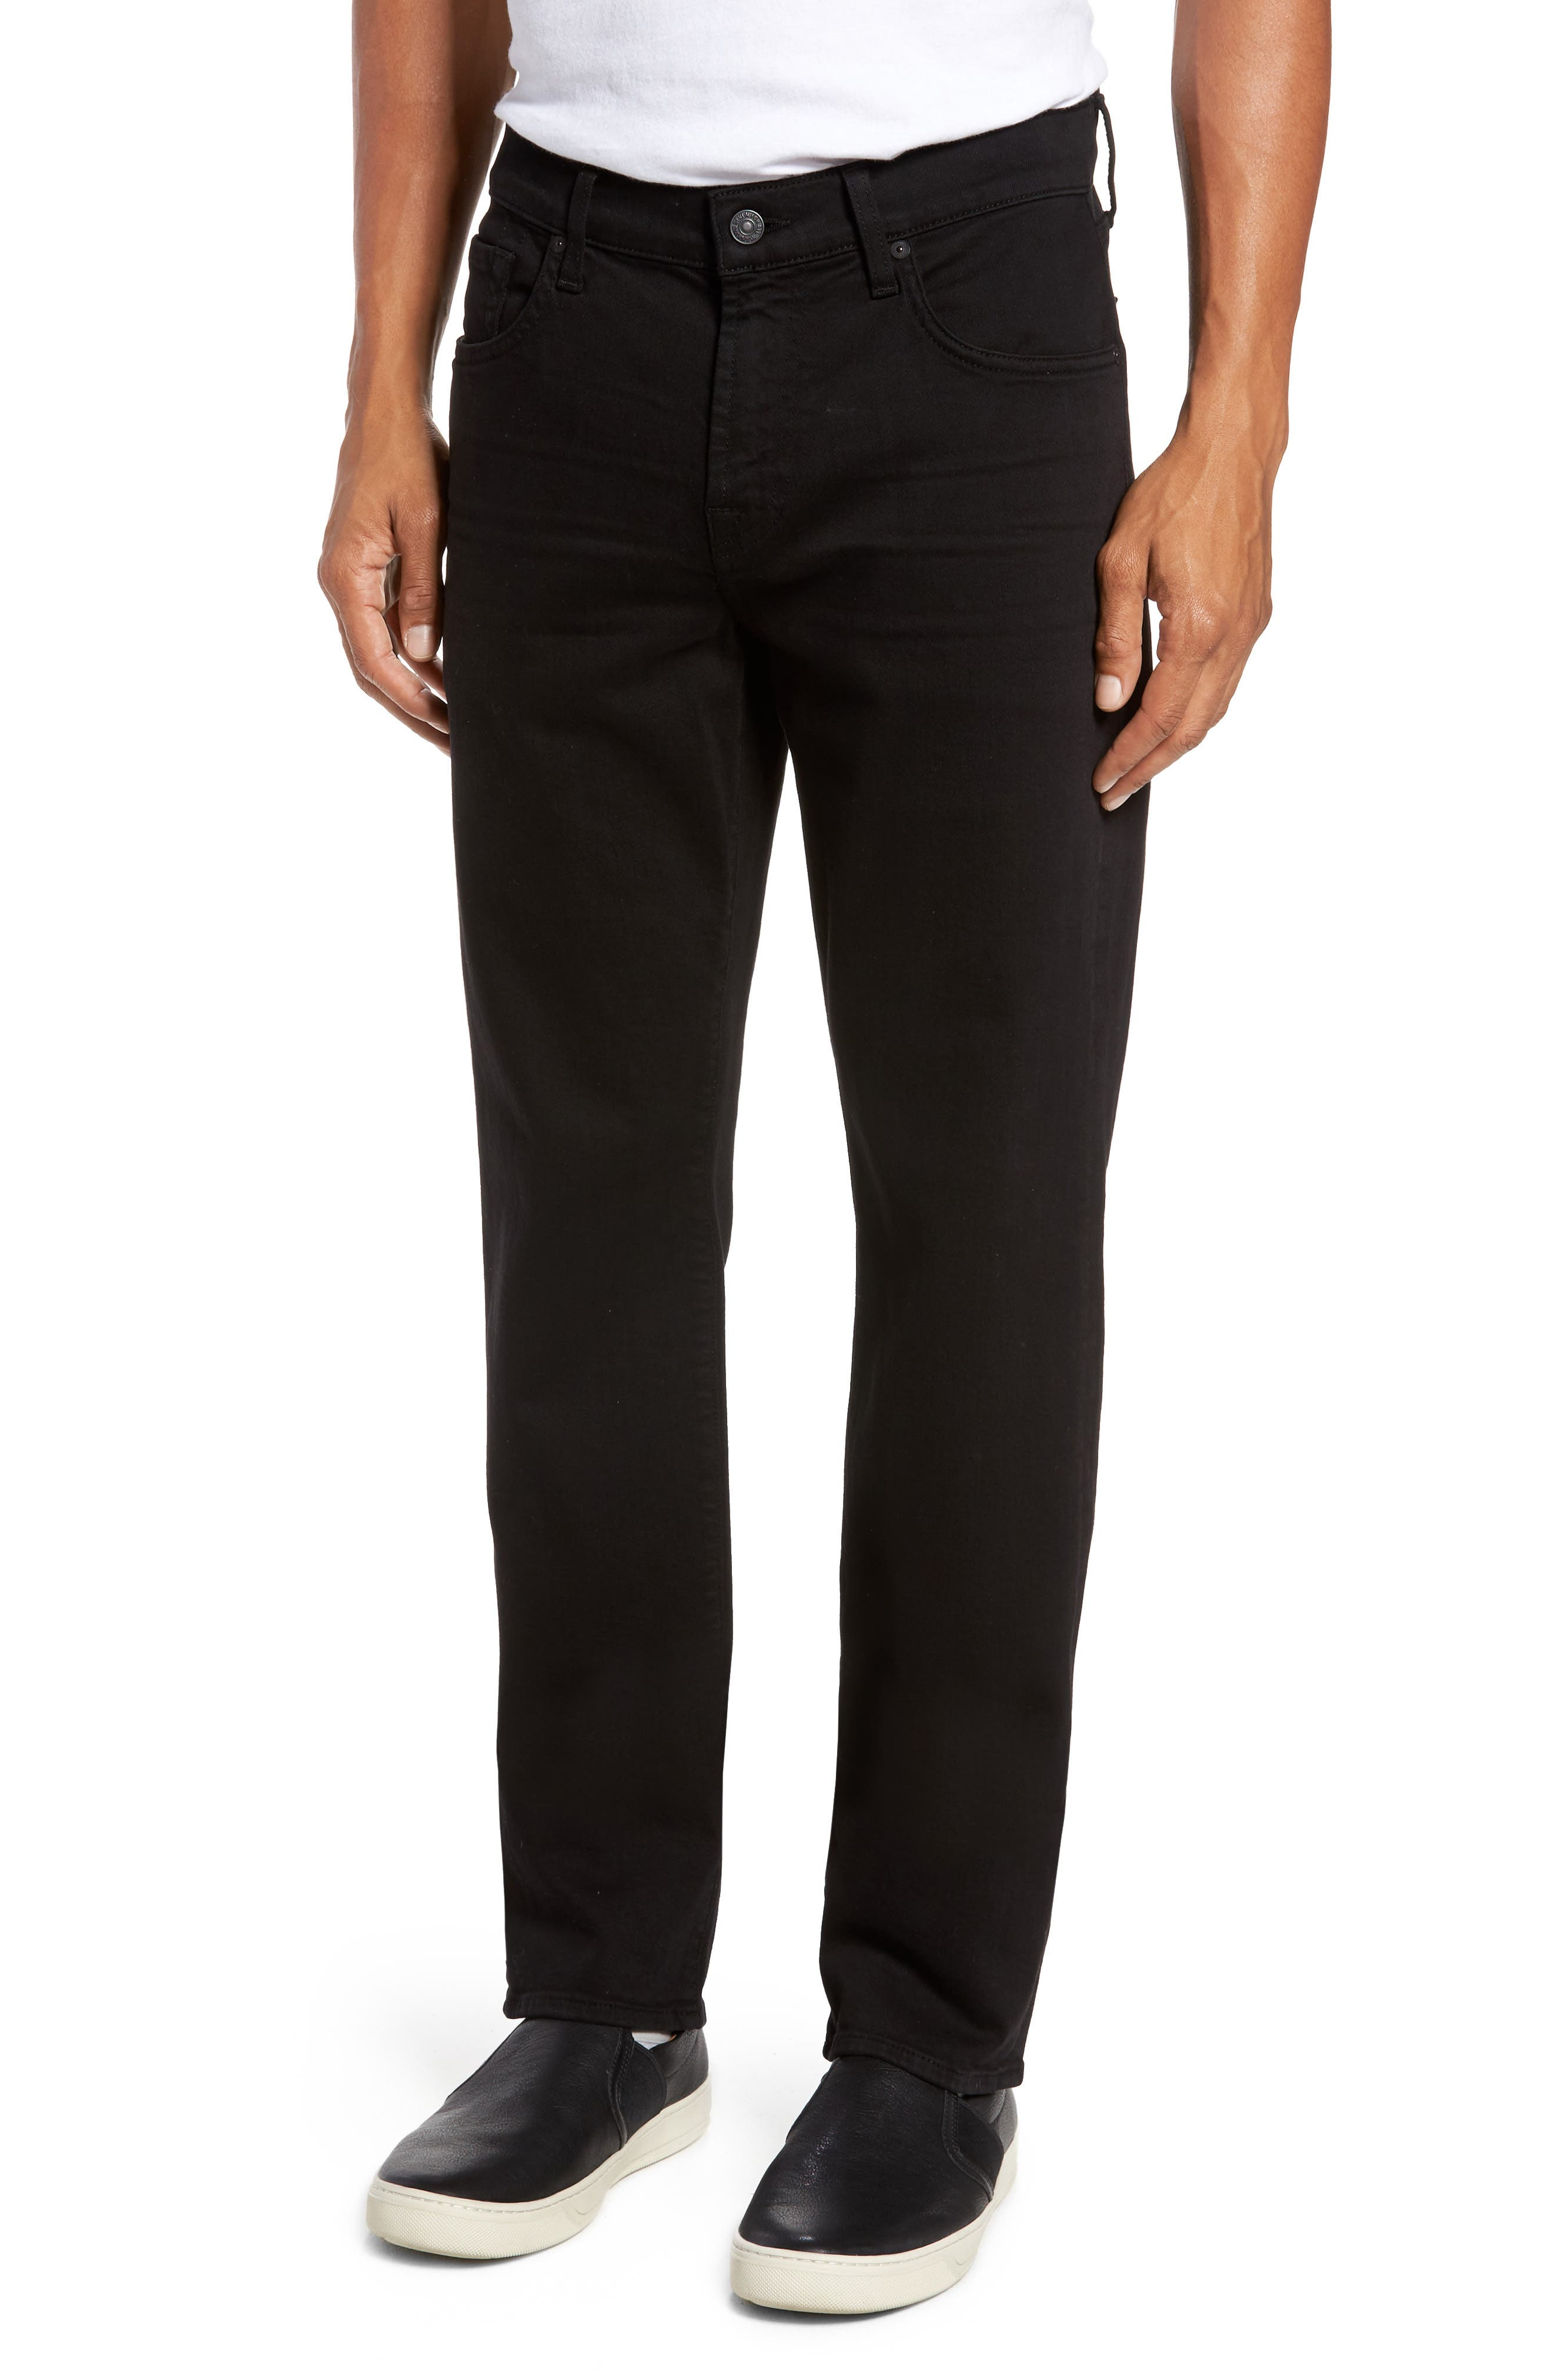 Luxe Performance - Slimmy Slim Fit Jeans,                         Main,                         color, Annex Black